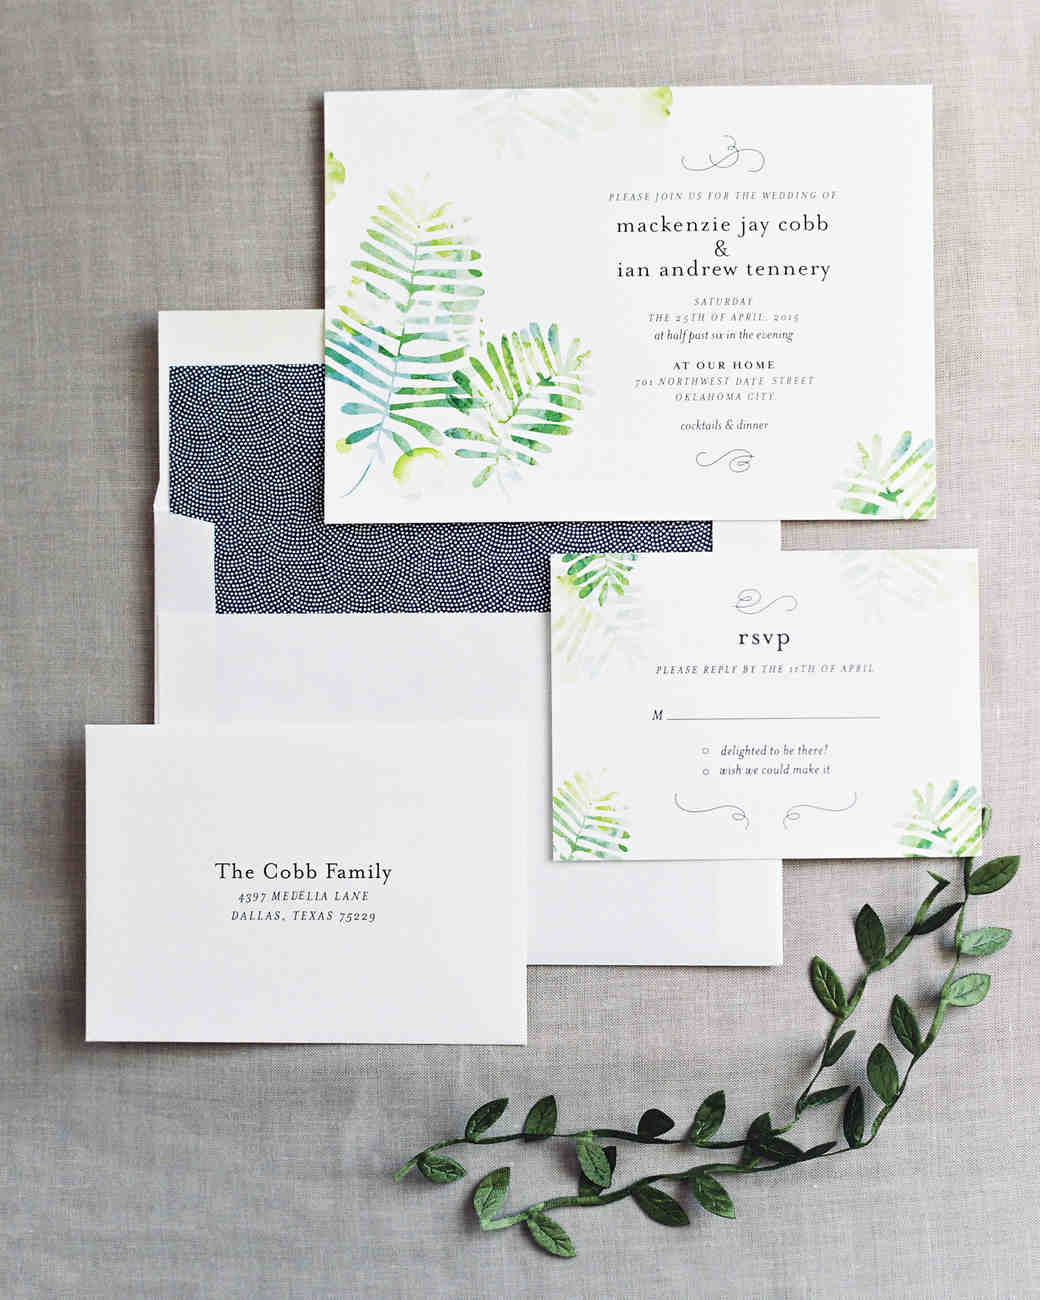 mackenzie-ian-wedding-invite-006r-s112461-0116.jpg